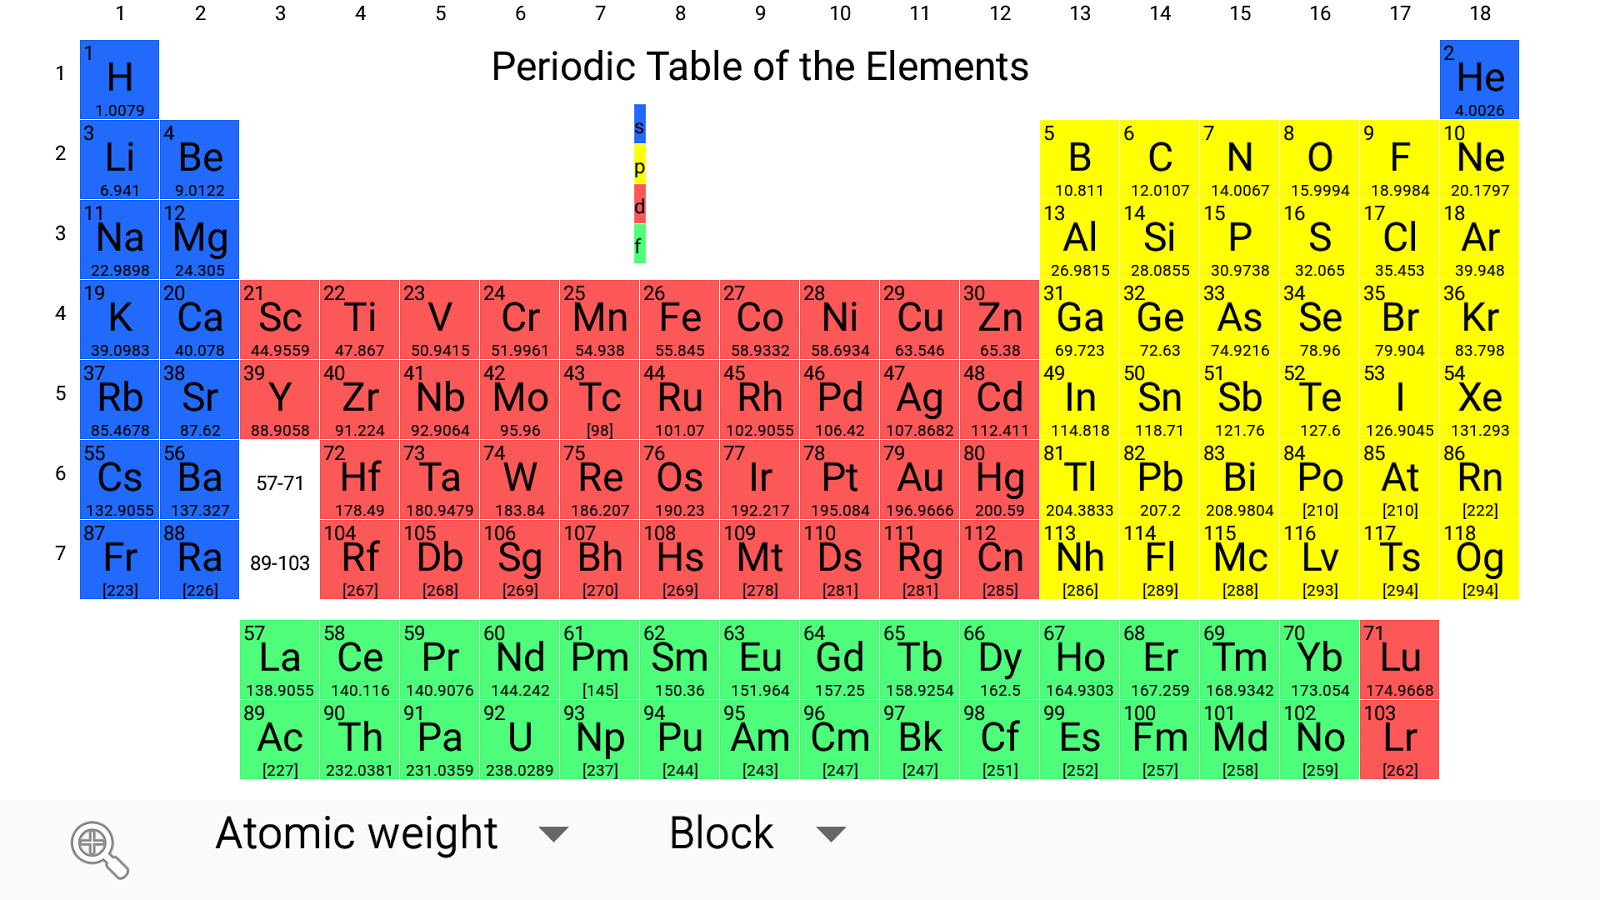 Periodic table chemistry elements 2018 11 apk download android periodic table chemistry elements 2018 11 screenshot 3 urtaz Image collections